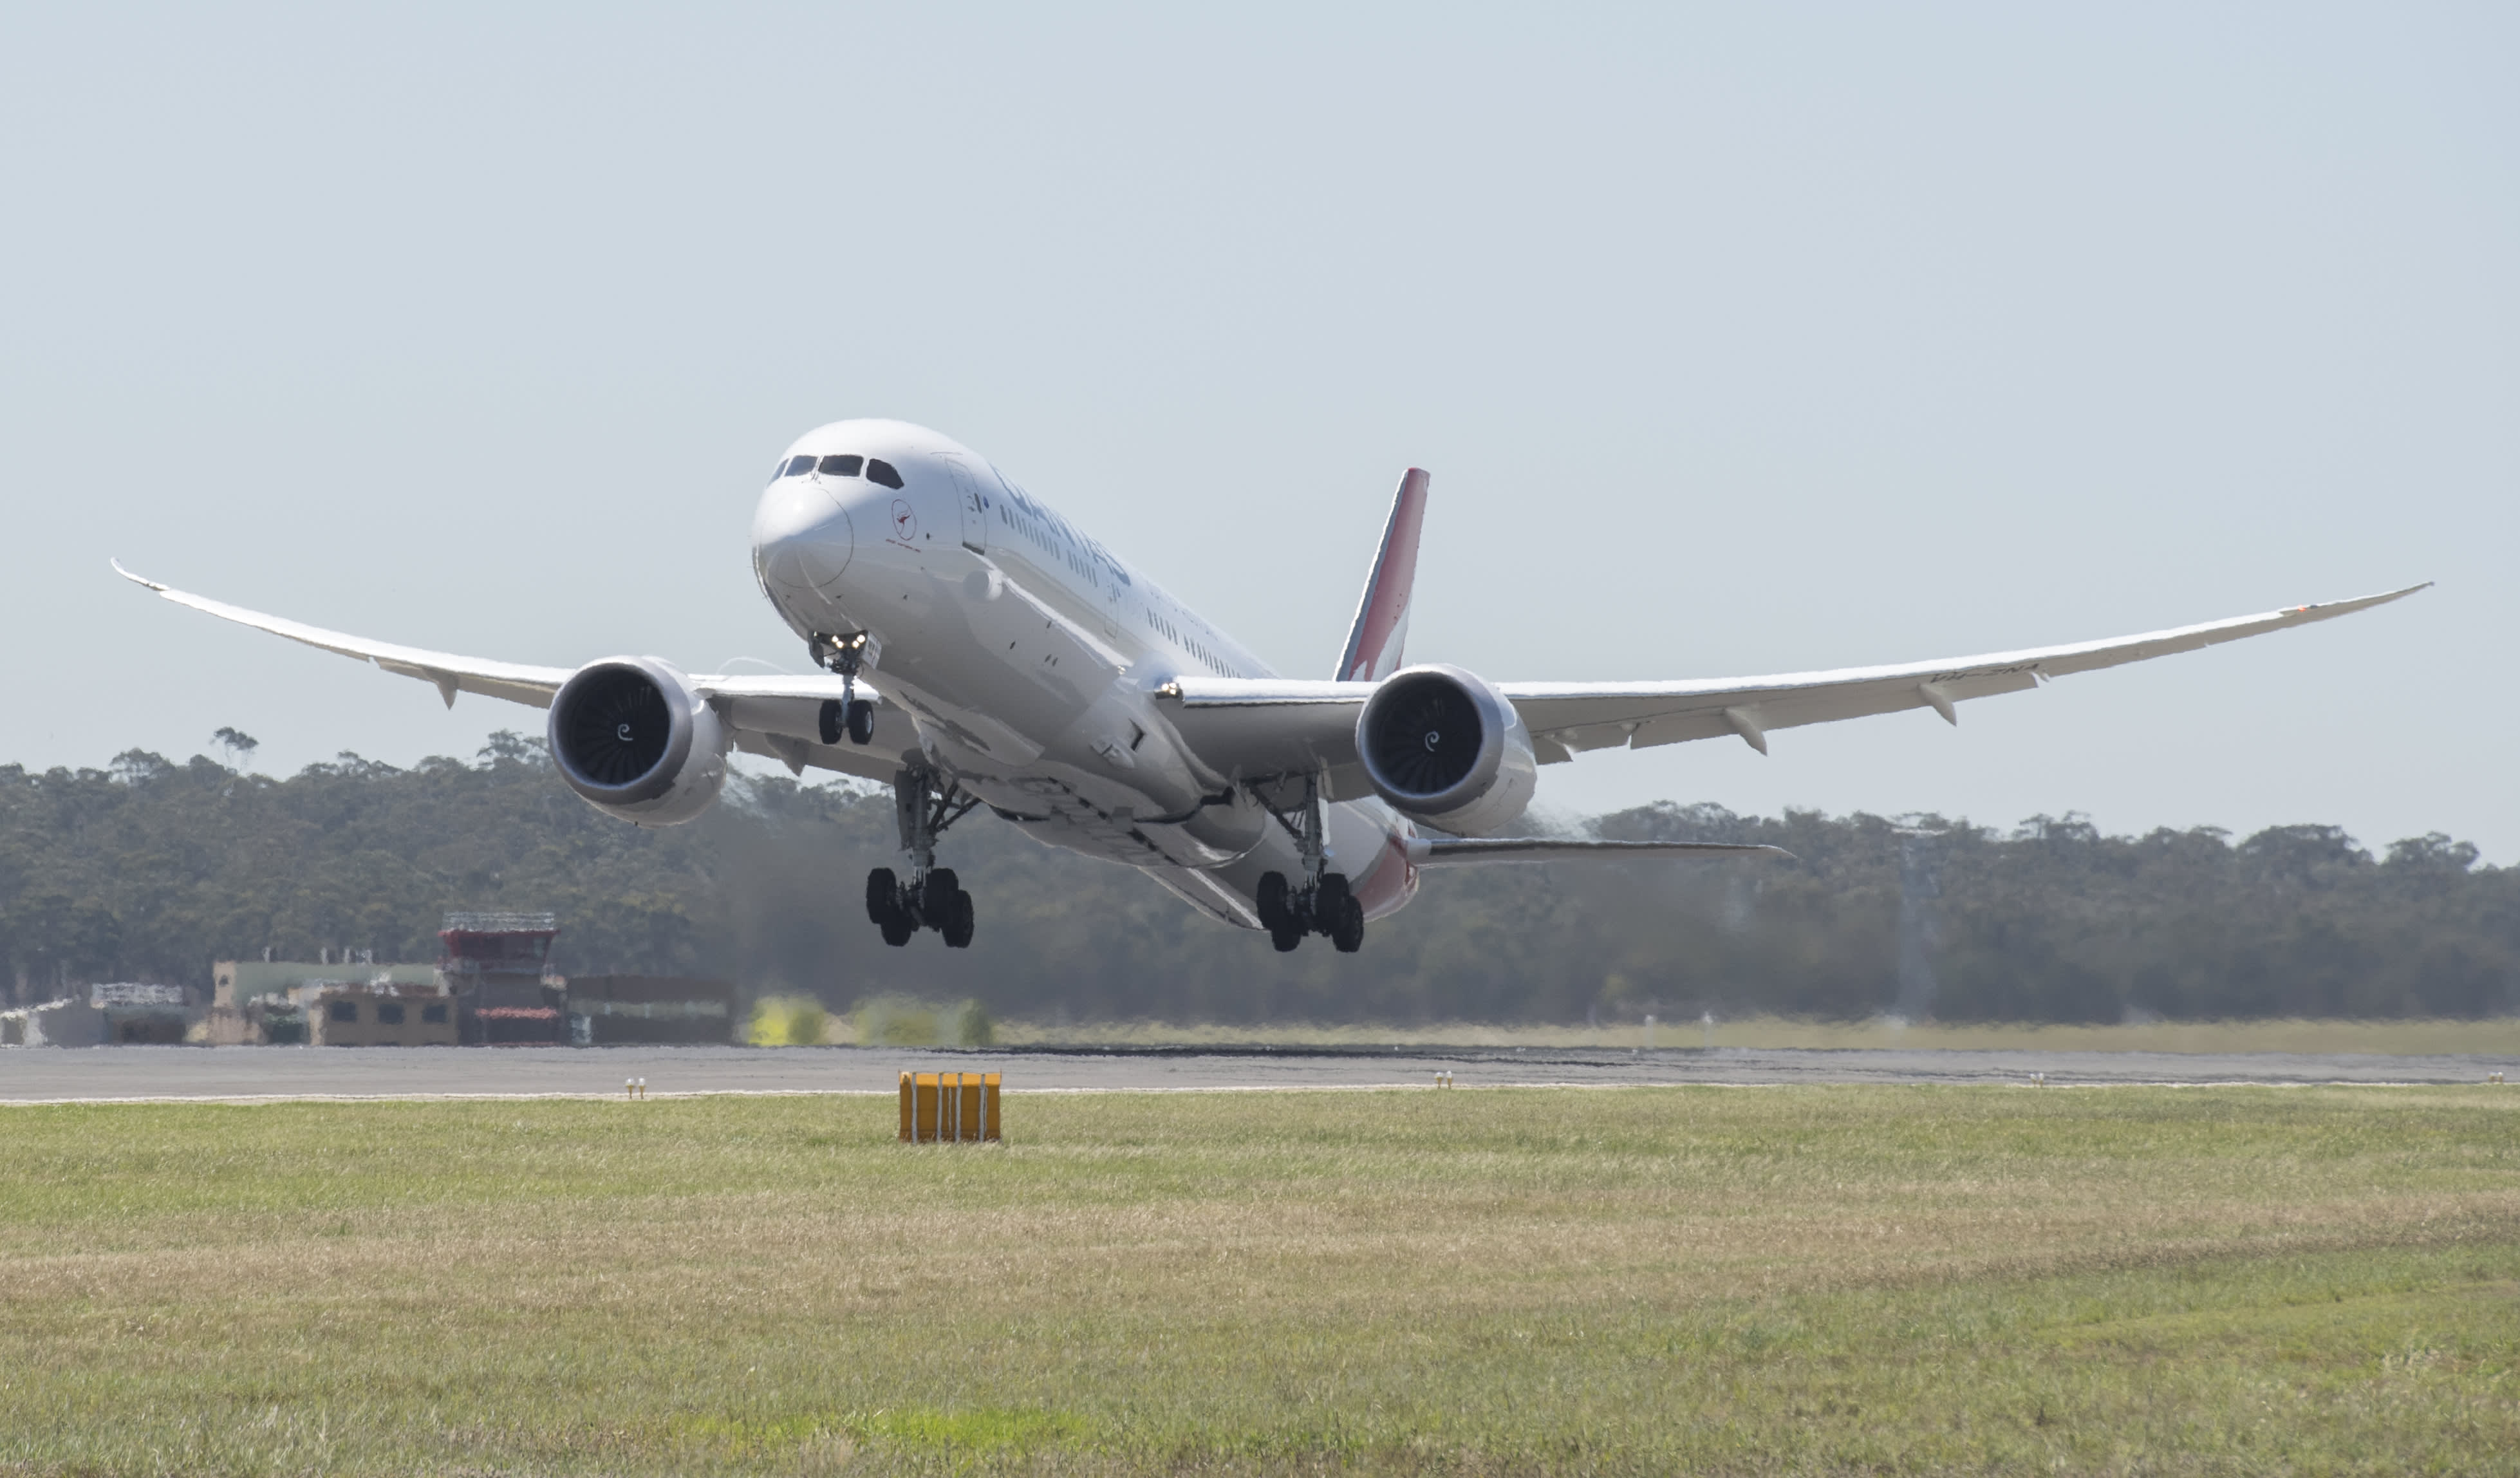 Qantas is running 19-hour test flights to see how it impacts people's health